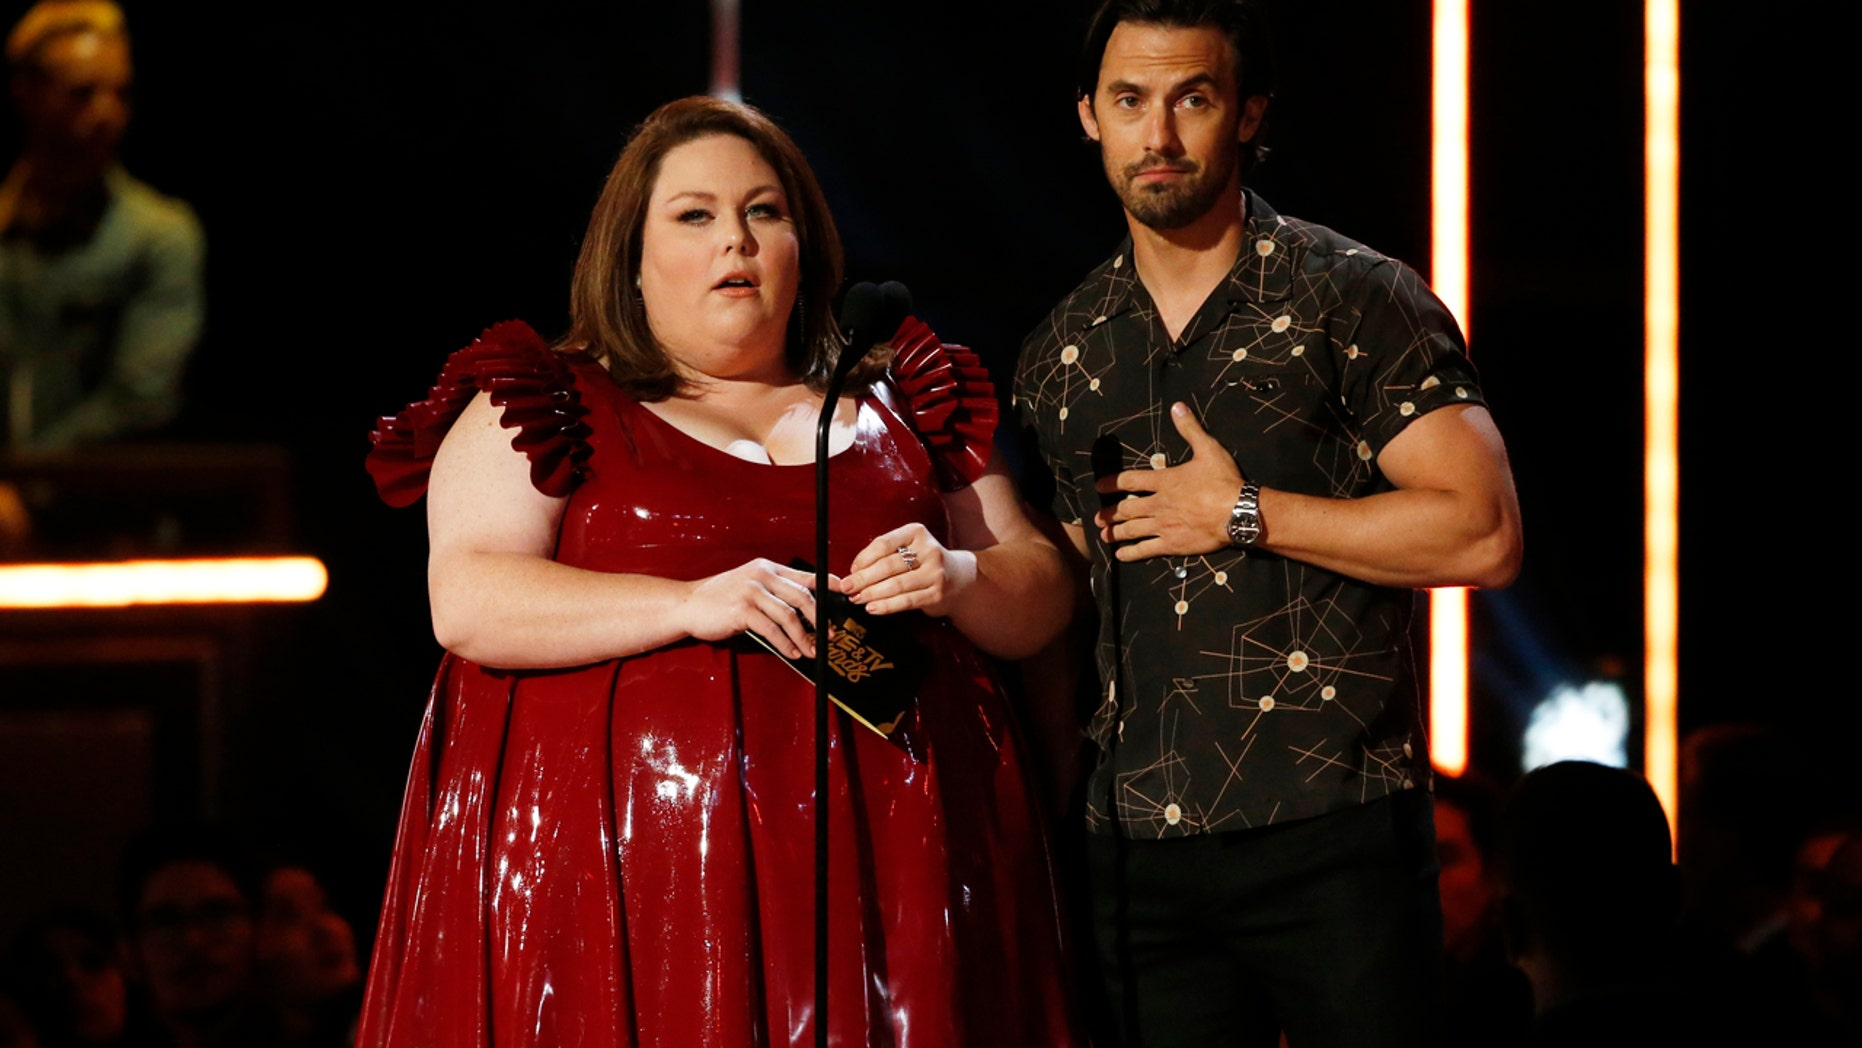 Chrissy Metz and Milo Ventimiglia present an award at the 2017 MTV Movie and TV Awards.